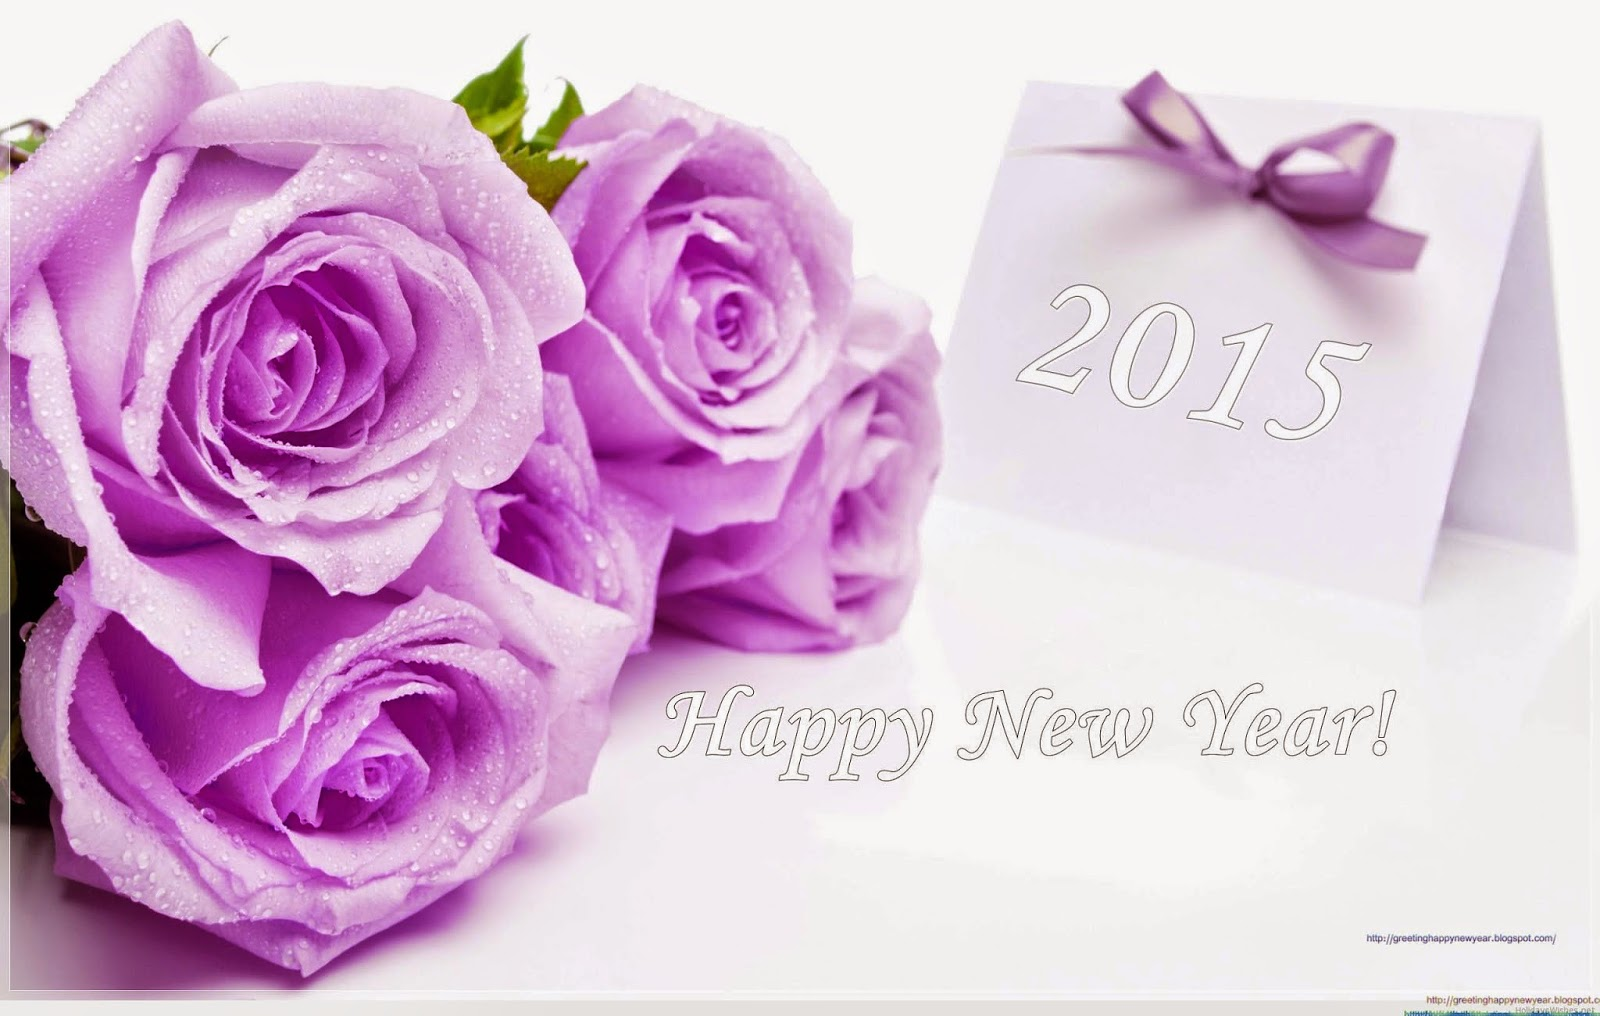 Happy New Year 2015 HD Cards - New Latest Wallpaper